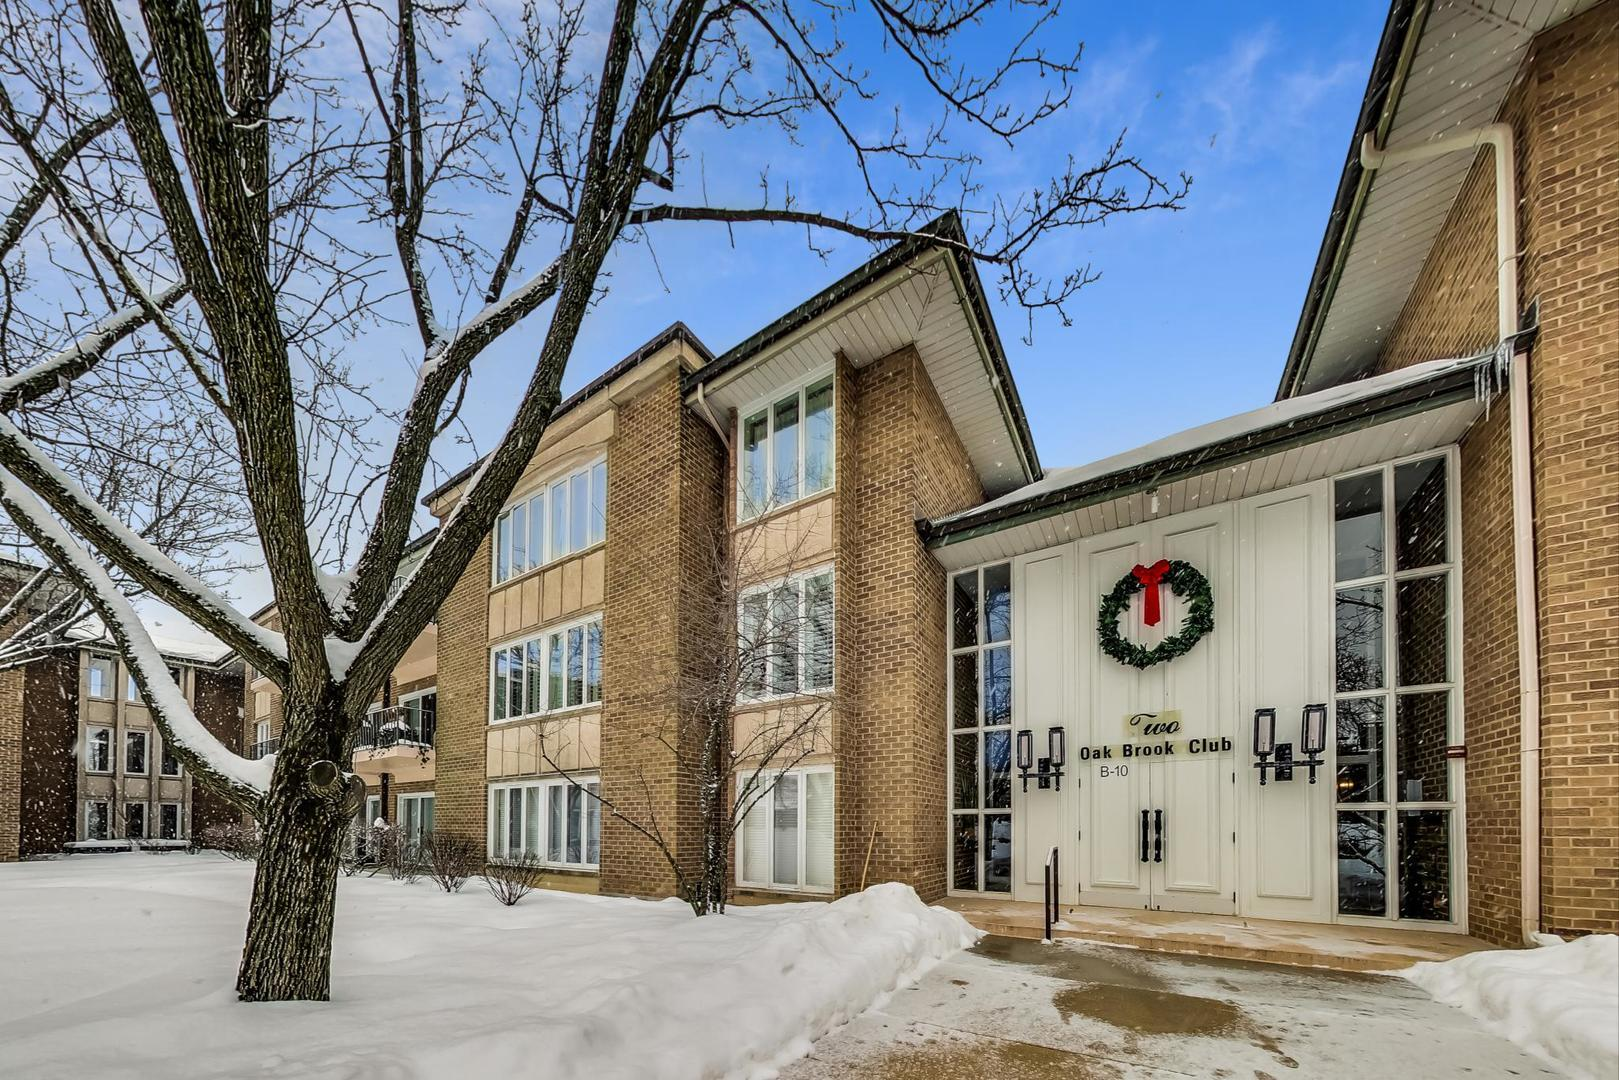 2 Oak Brook Club Drive #C110, Oak Brook, IL 60523 - #: 10995019